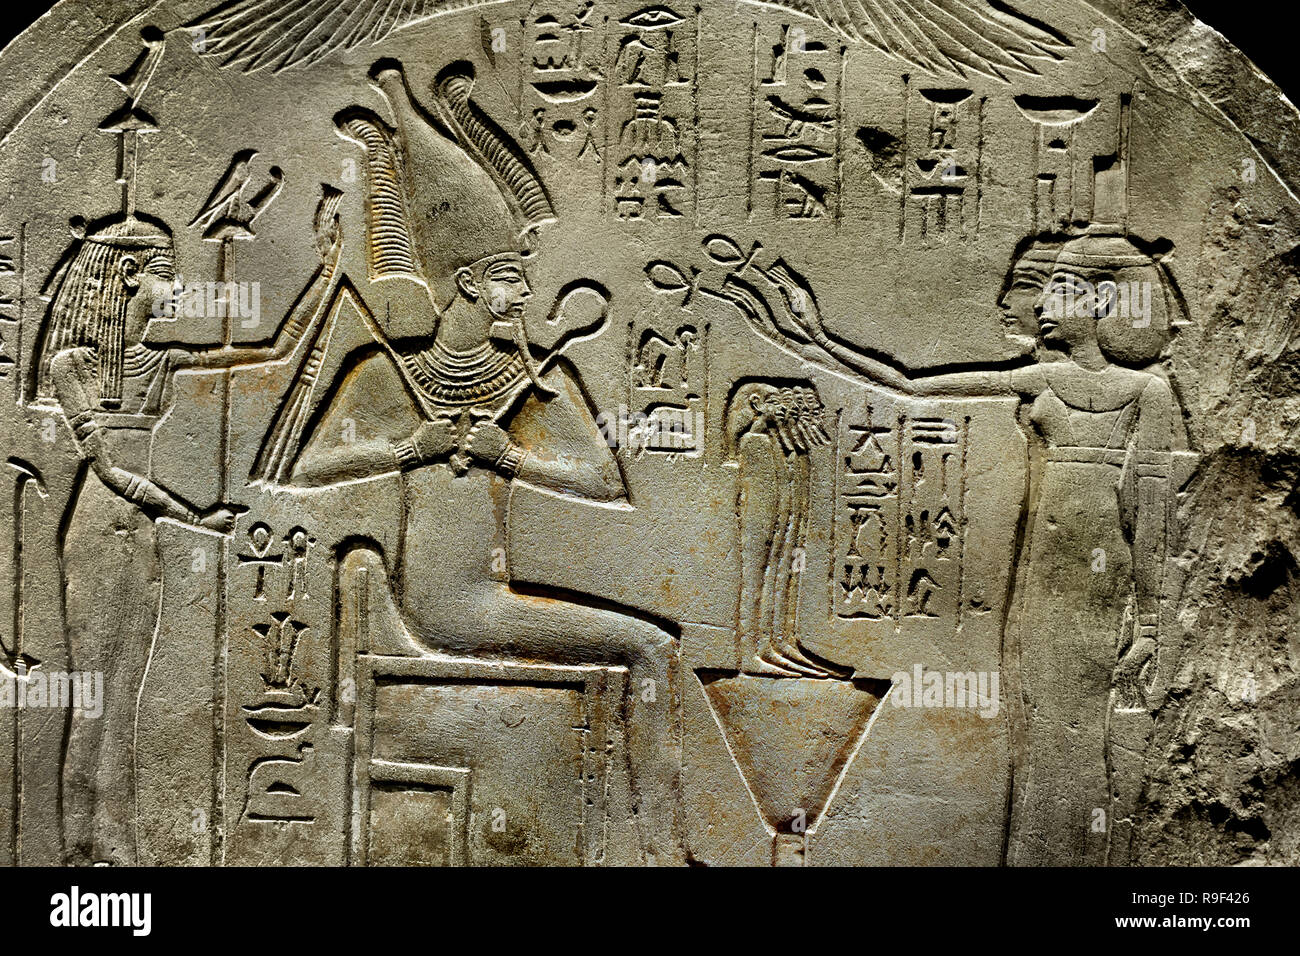 Stele Fragment with Osiris and other gods, 49 x 55 x 10 cm, Period: New Kingdom 1550-1070 BC, Egypt, Egyptian. - Stock Image